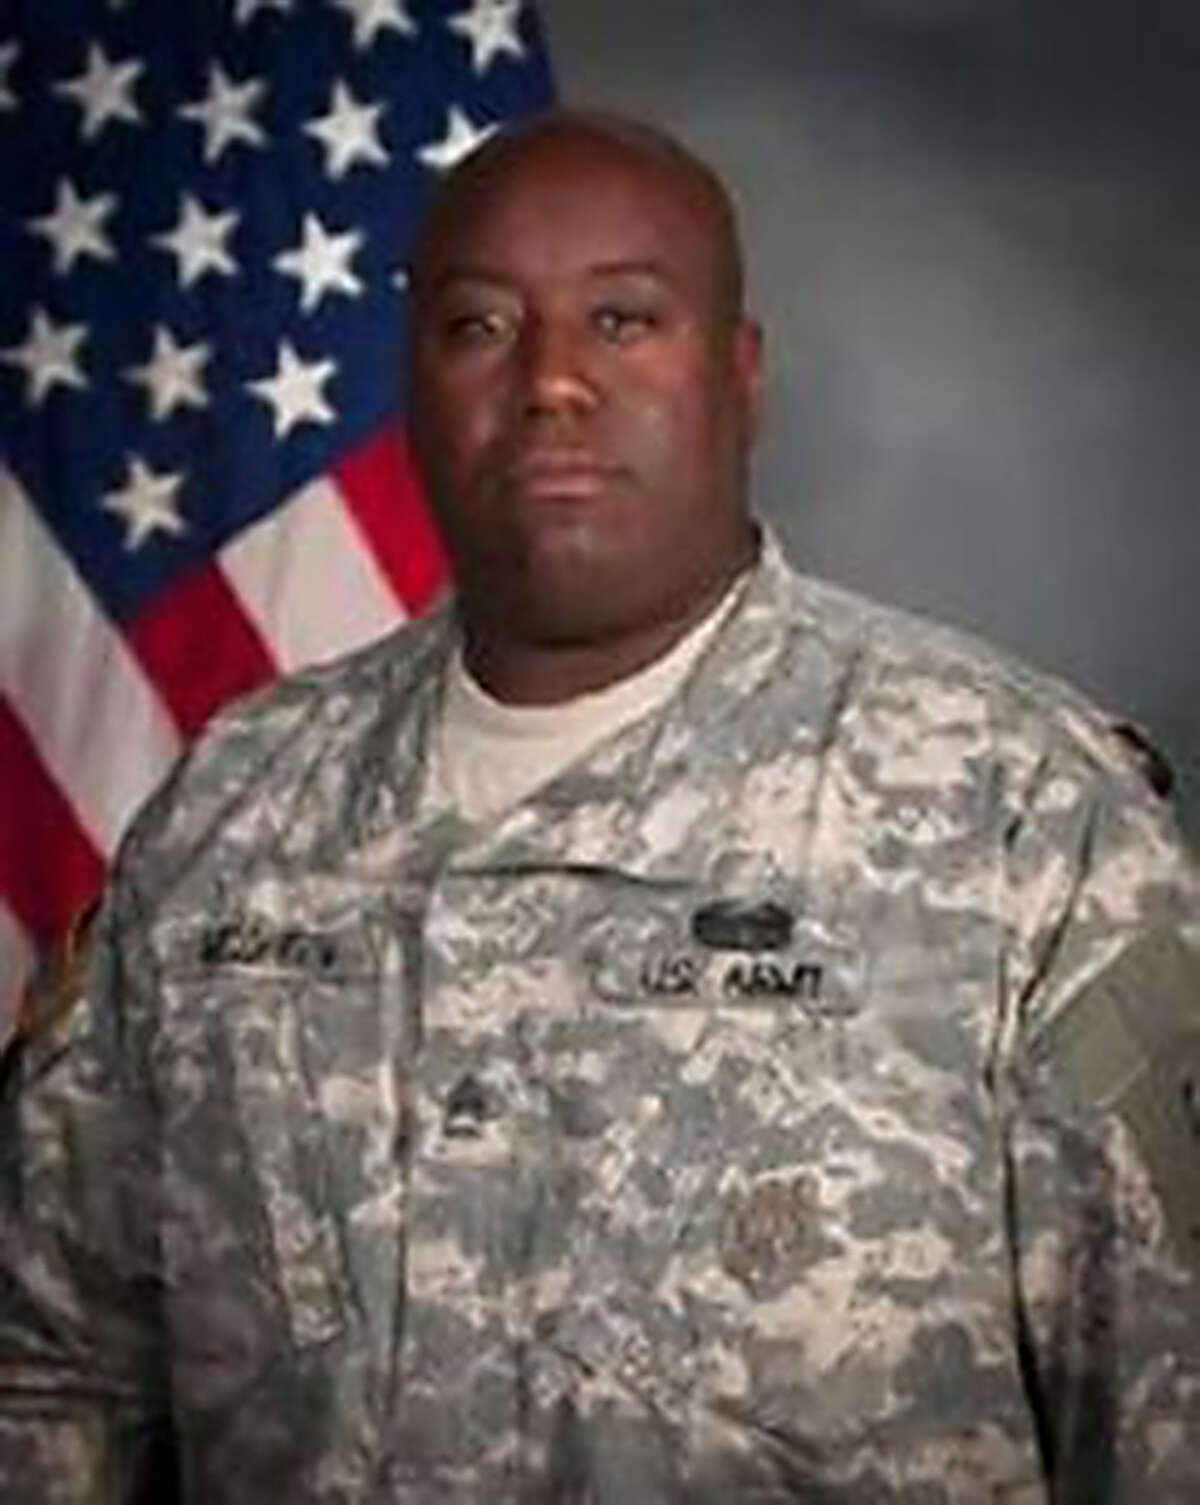 Sgt. 1st Class Gregory McQueen's plea deal likely will reduce the maximum 40½ years he faces.